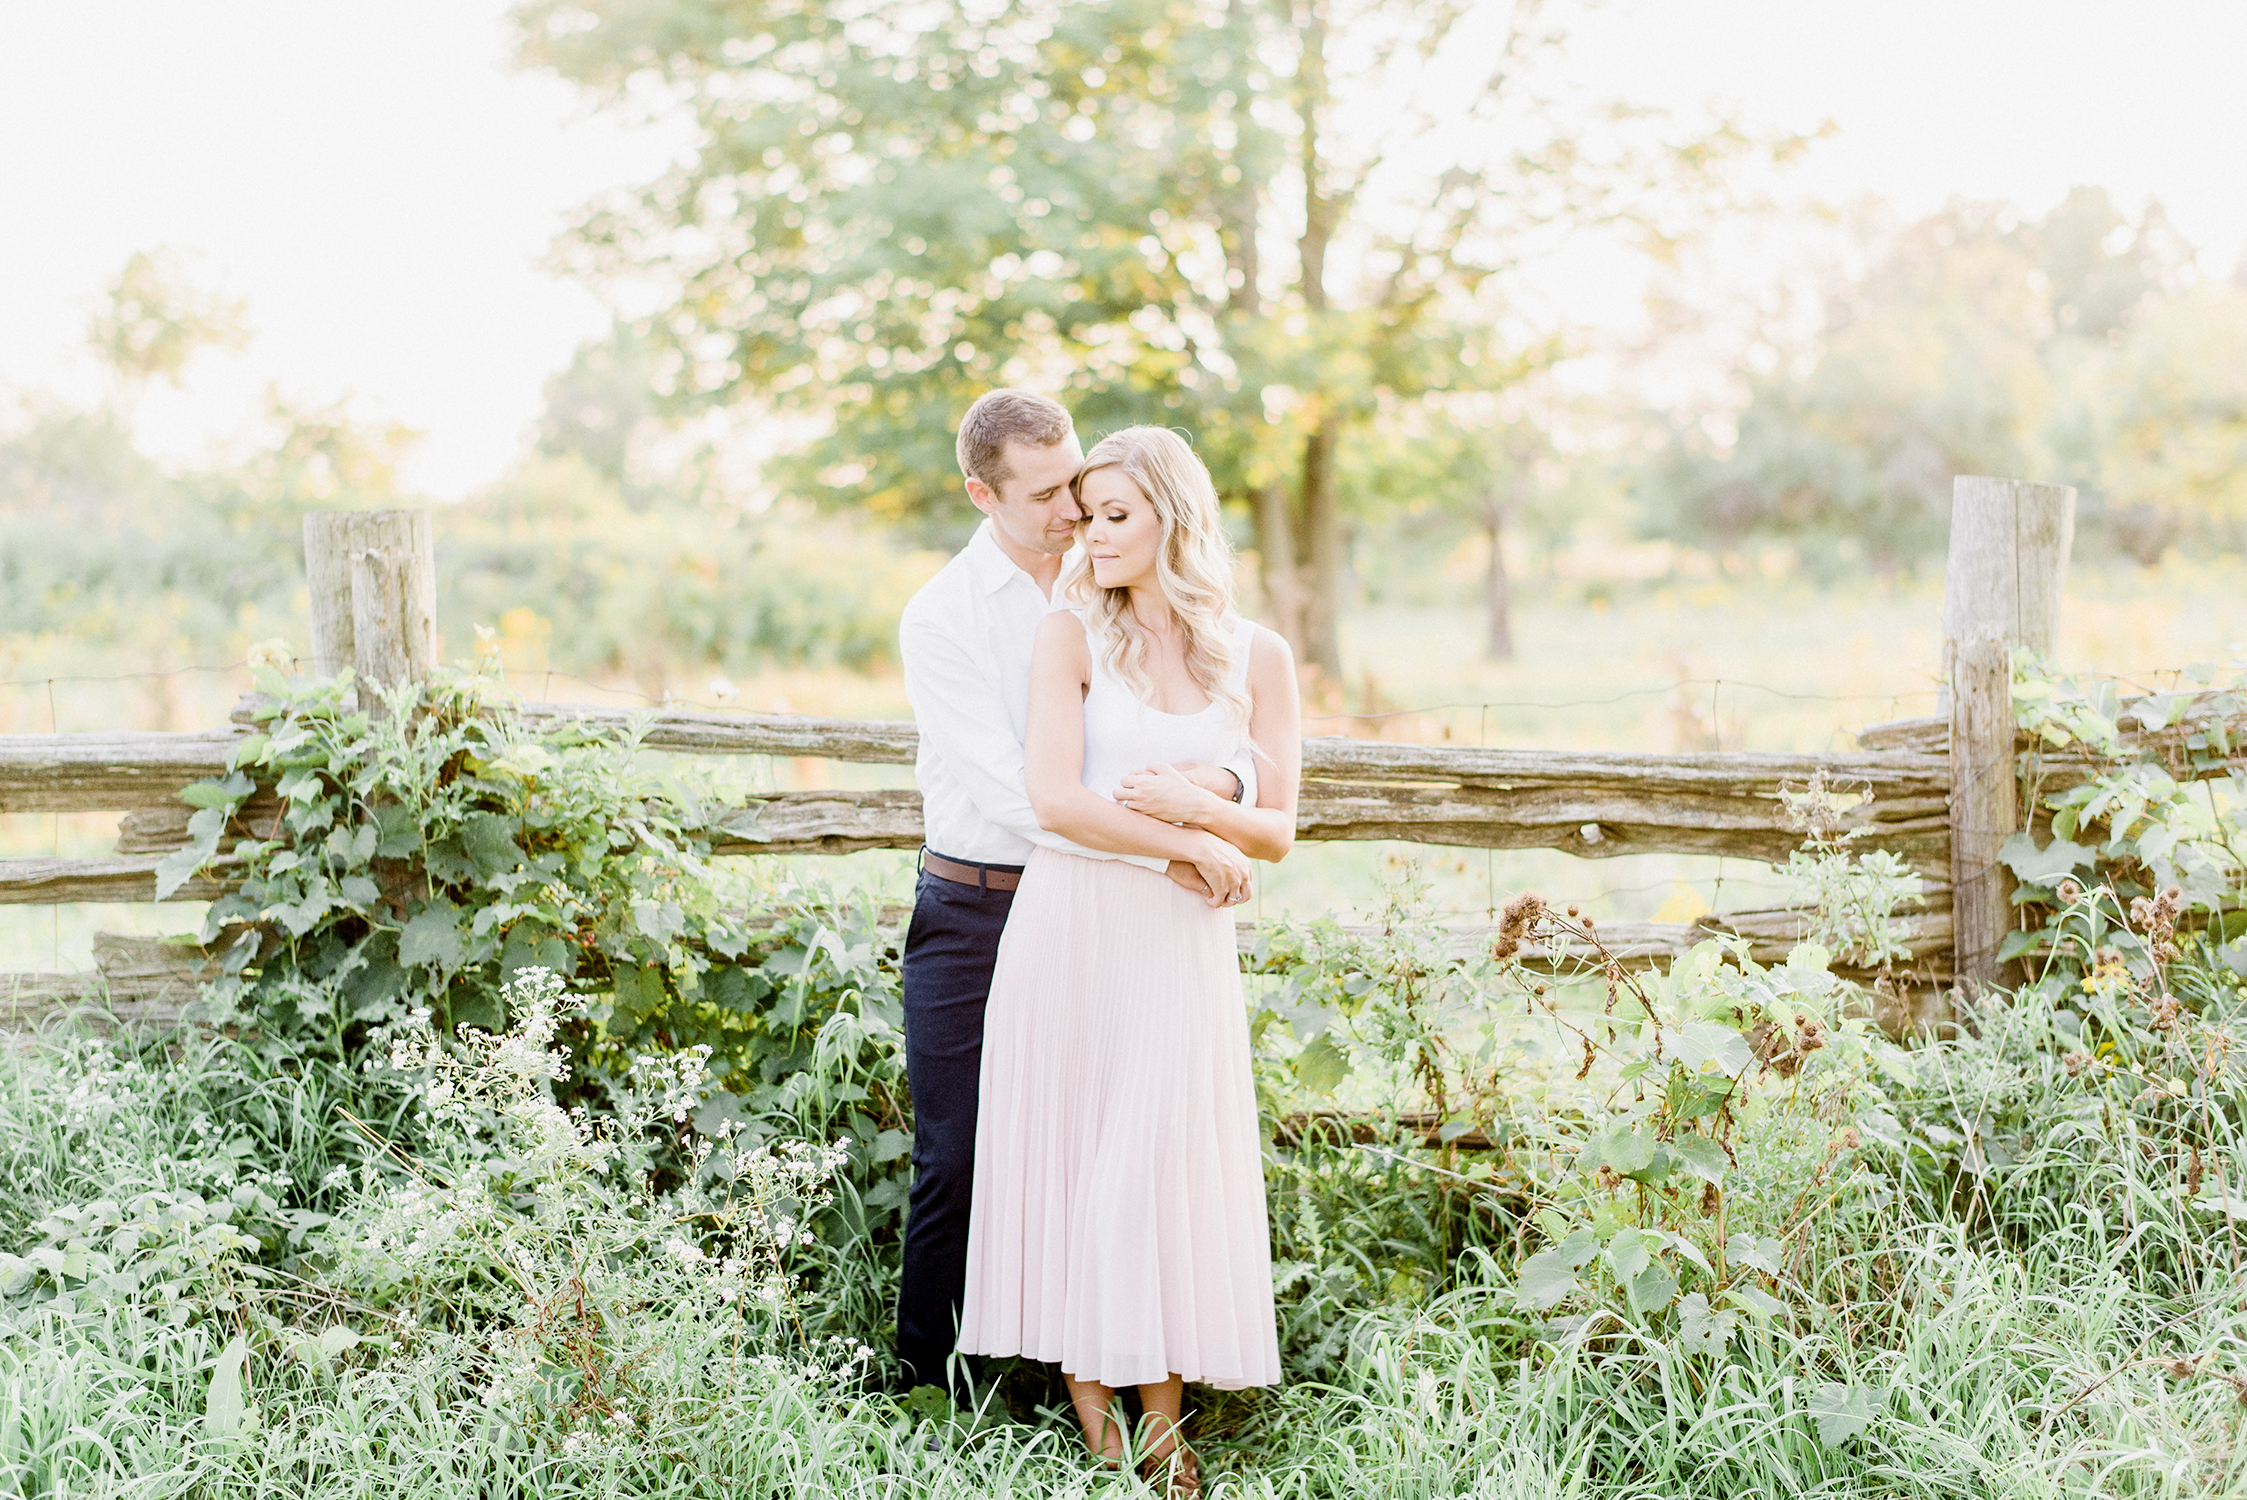 Bronte-Creek-Engagement-Session-Jenn-Kavanagh_Photography